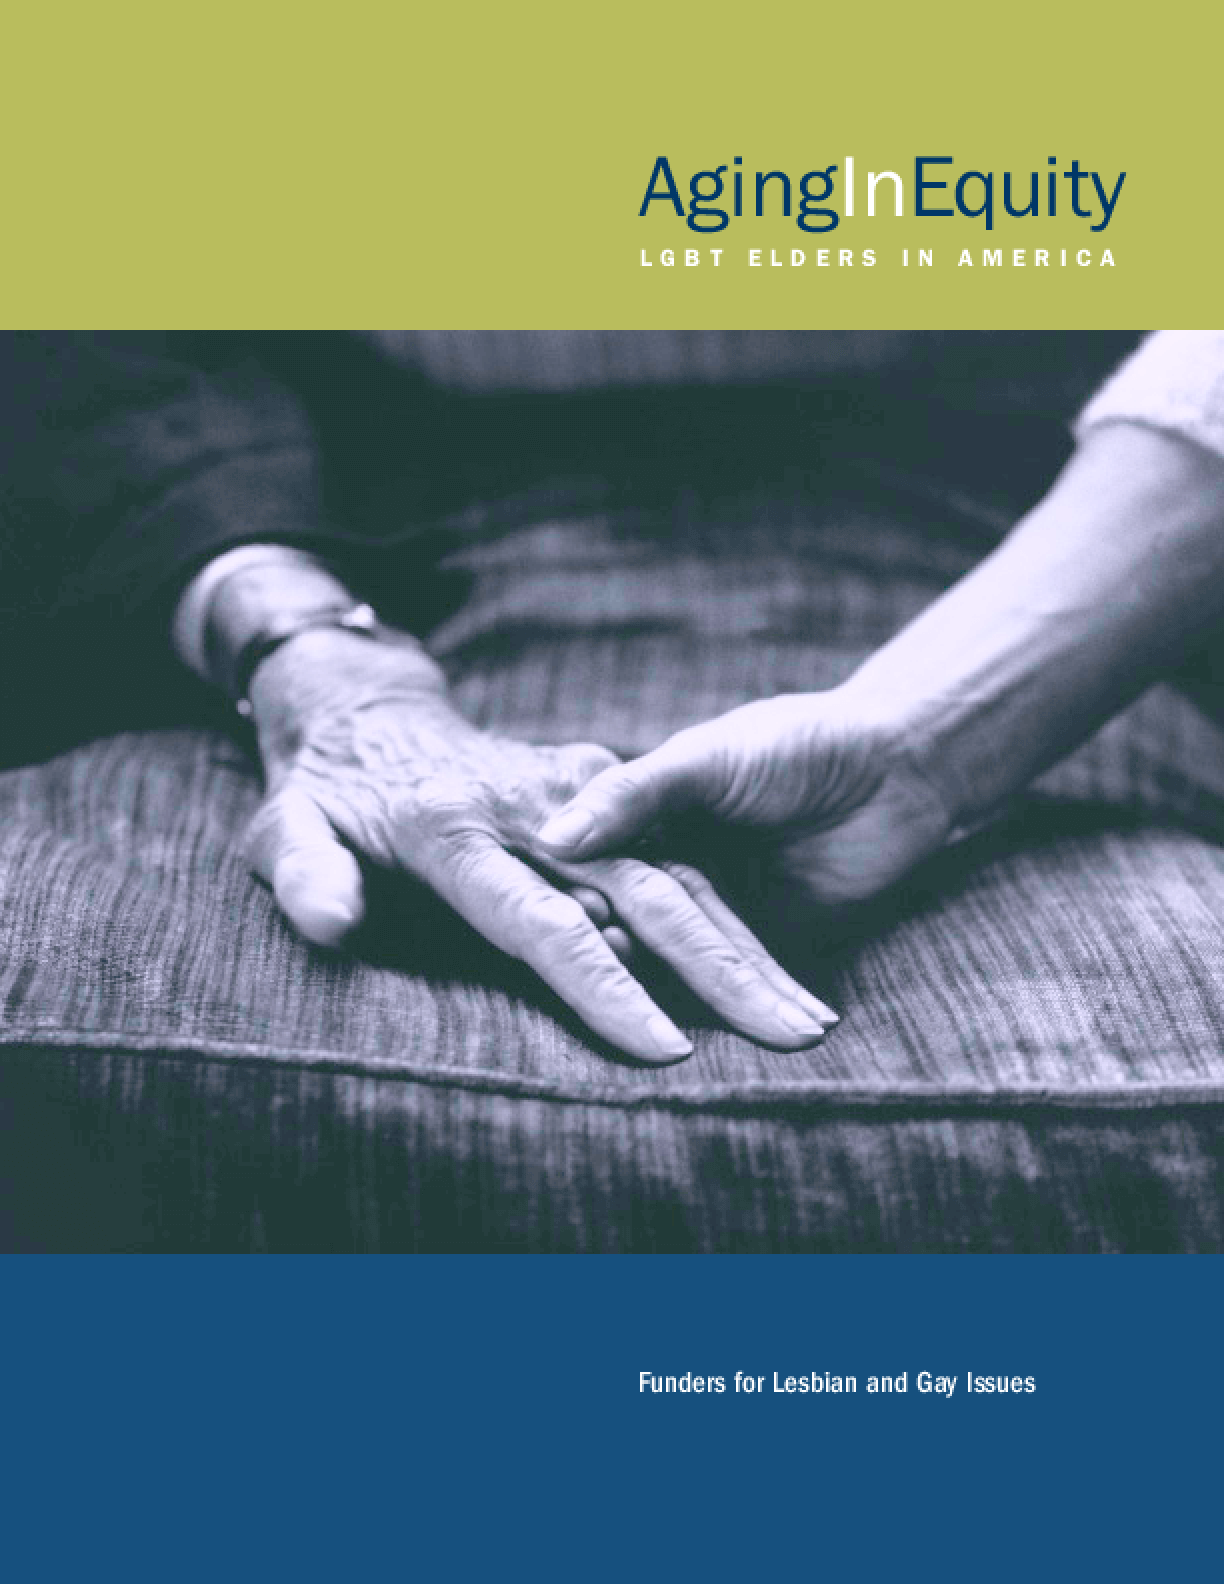 Aging in Equity: Lesbian, Gay, Bisexual and Transgender Elders in America